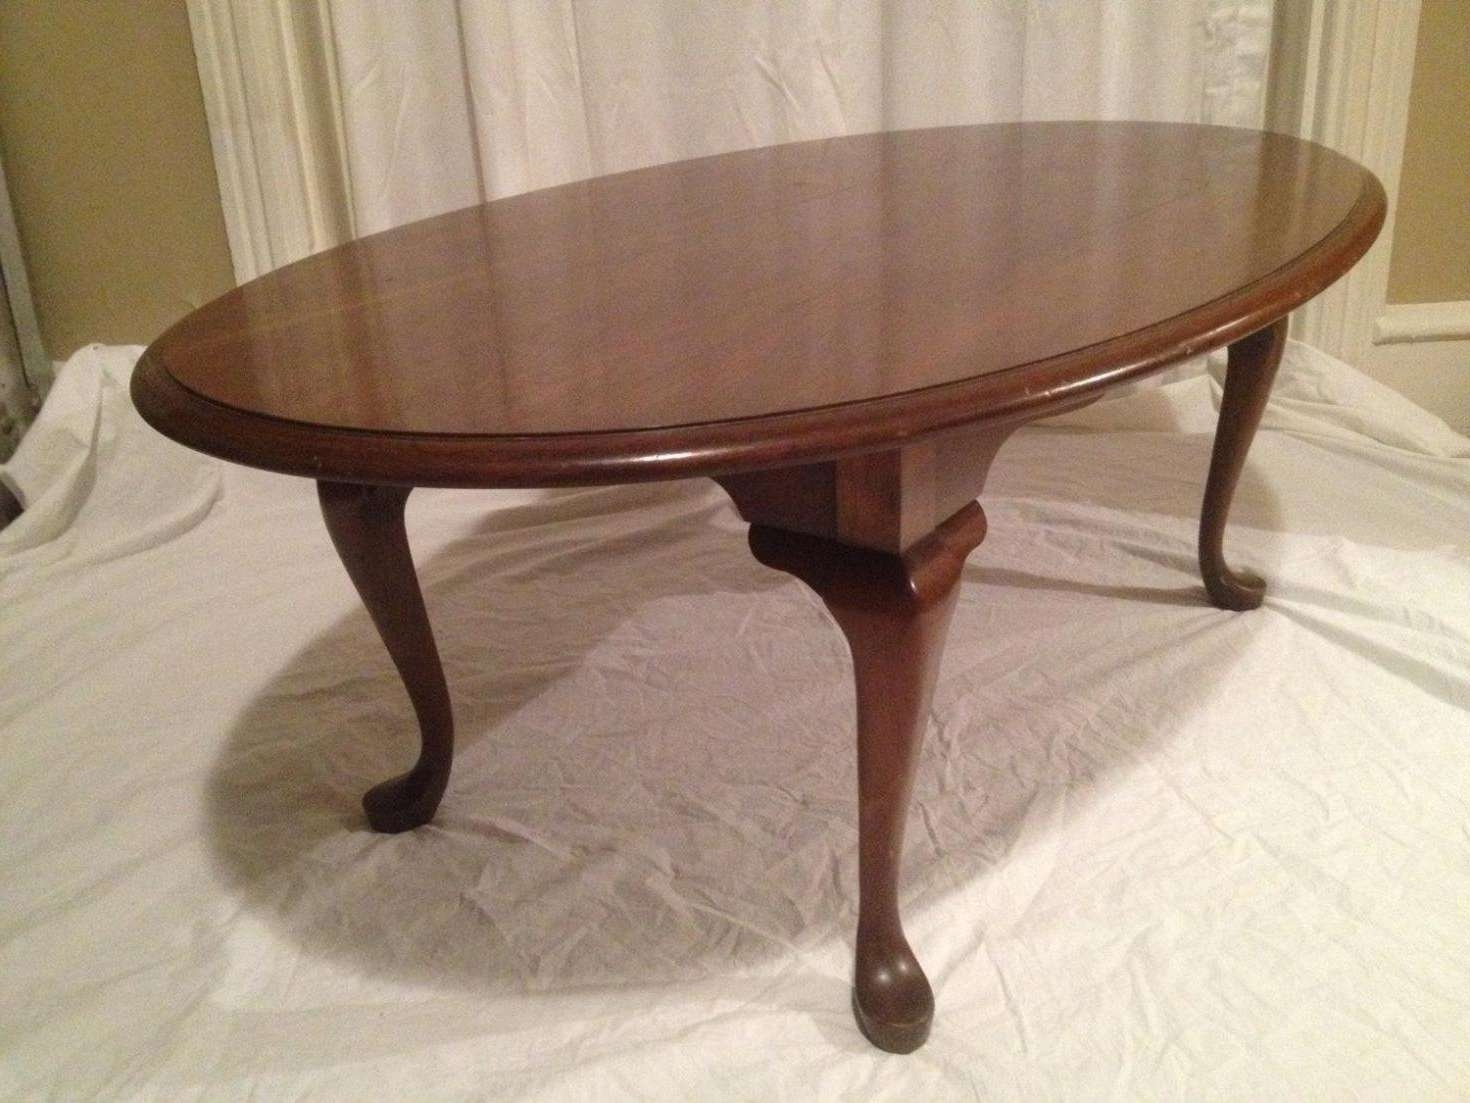 Famous Oval Wooden Coffee Tables In Coffee Tables : Terrific Light Brown Farmhouse Oval Wood Coffee (View 8 of 20)